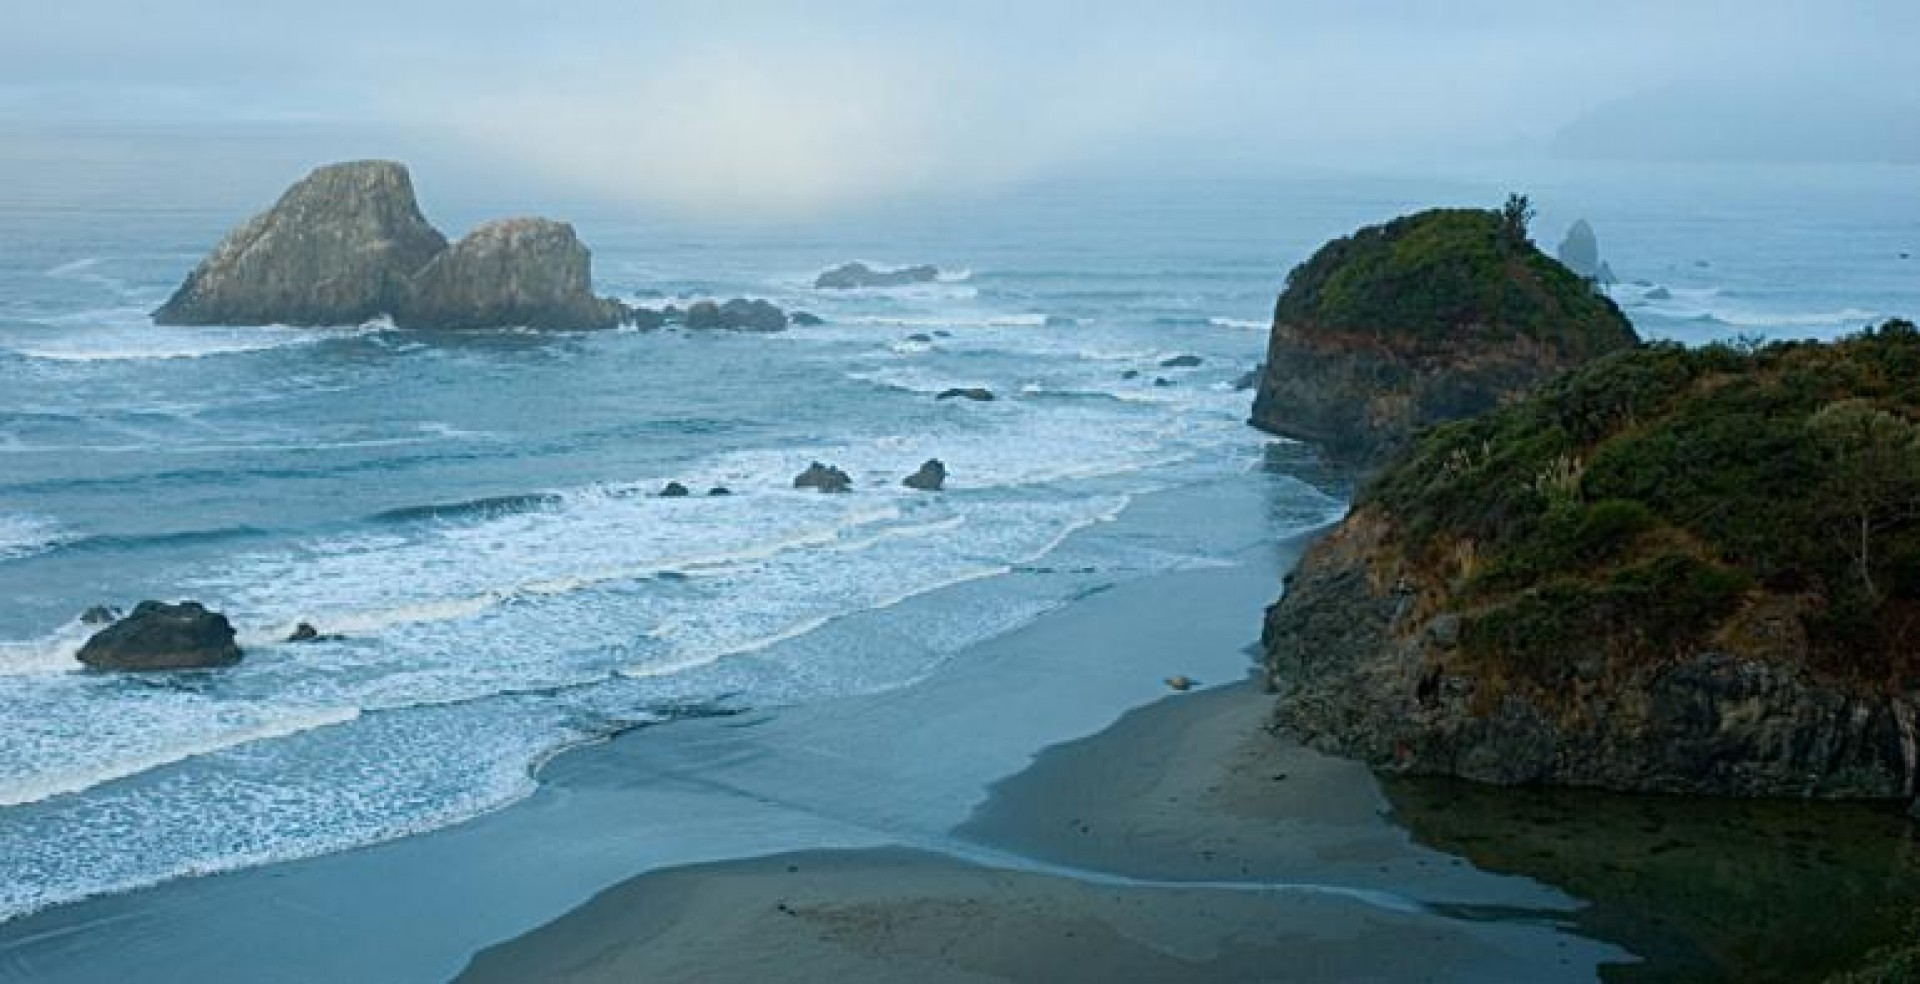 Haeger's photo of Moonstone beach